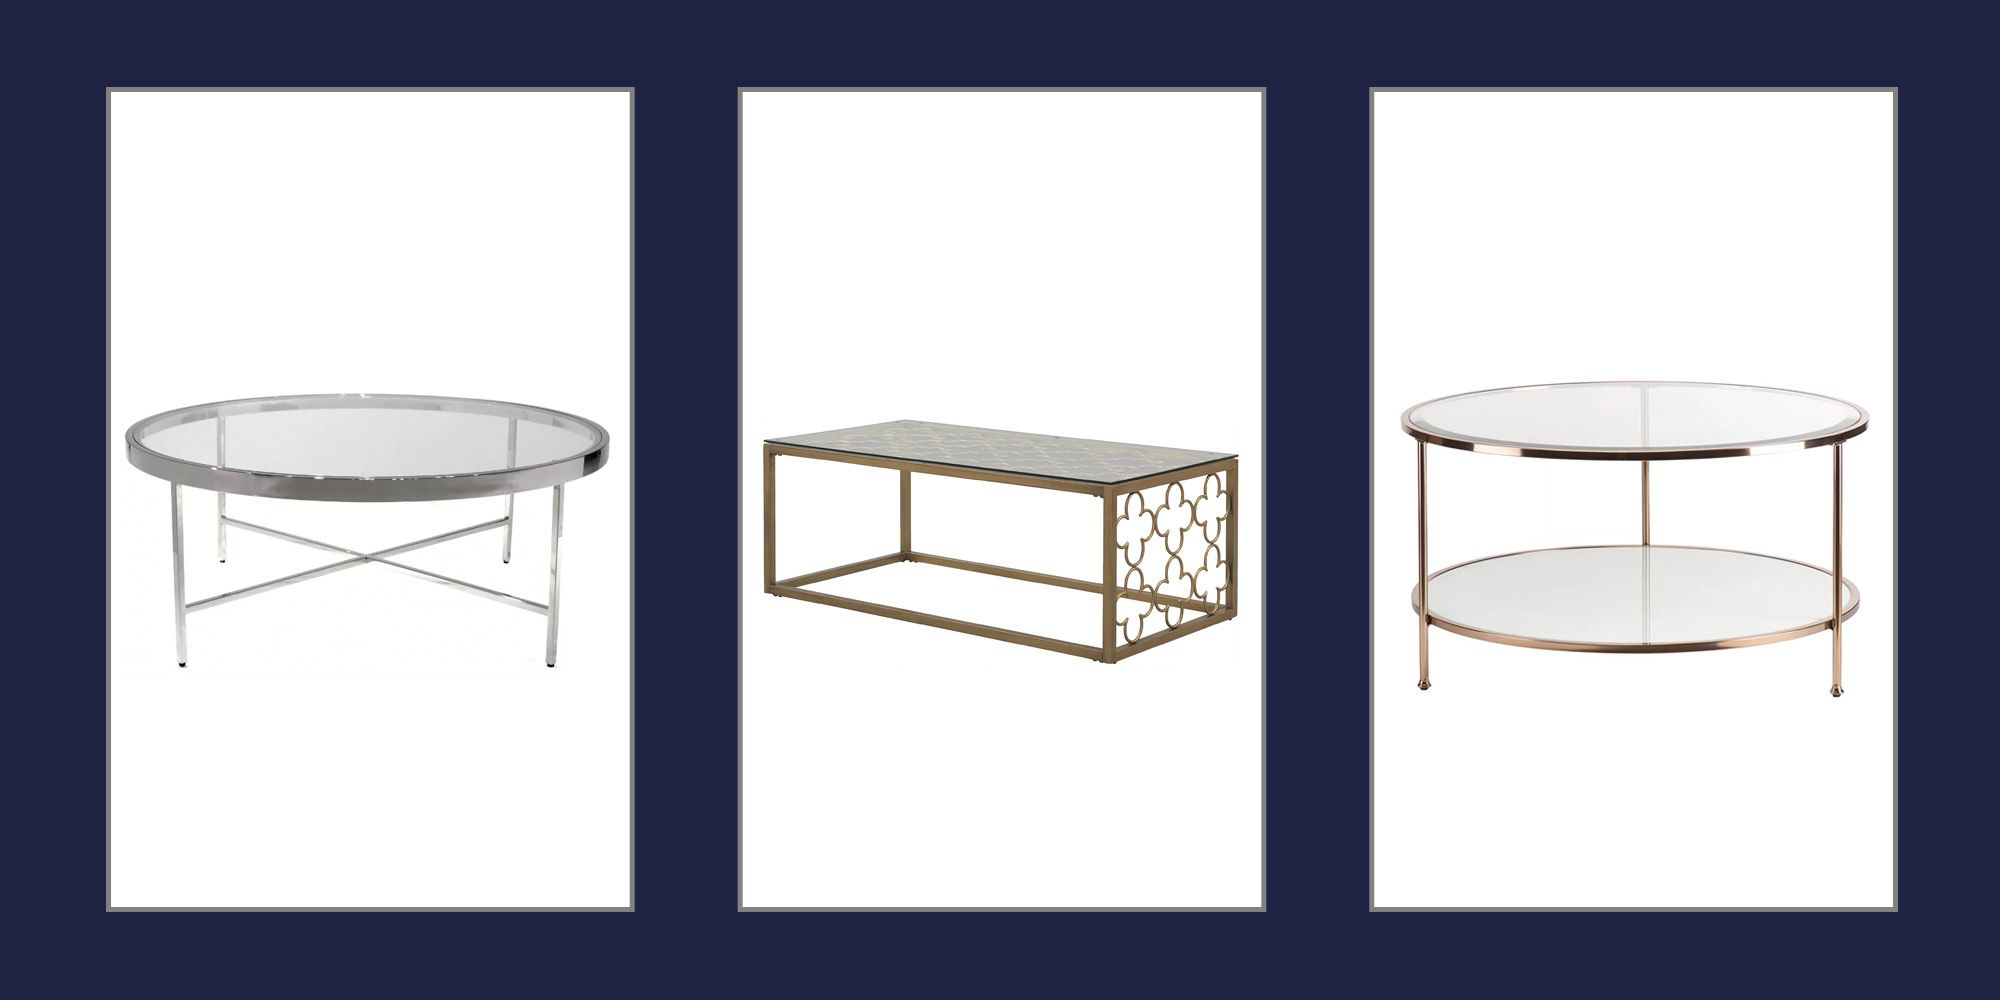 Best Glass Coffee Tables – Coffee Tables With Glass Tops Pertaining To Well Liked The Curated Nomad Quatrefoil Goldtone Metal And Glass Coffee Tables (View 4 of 20)